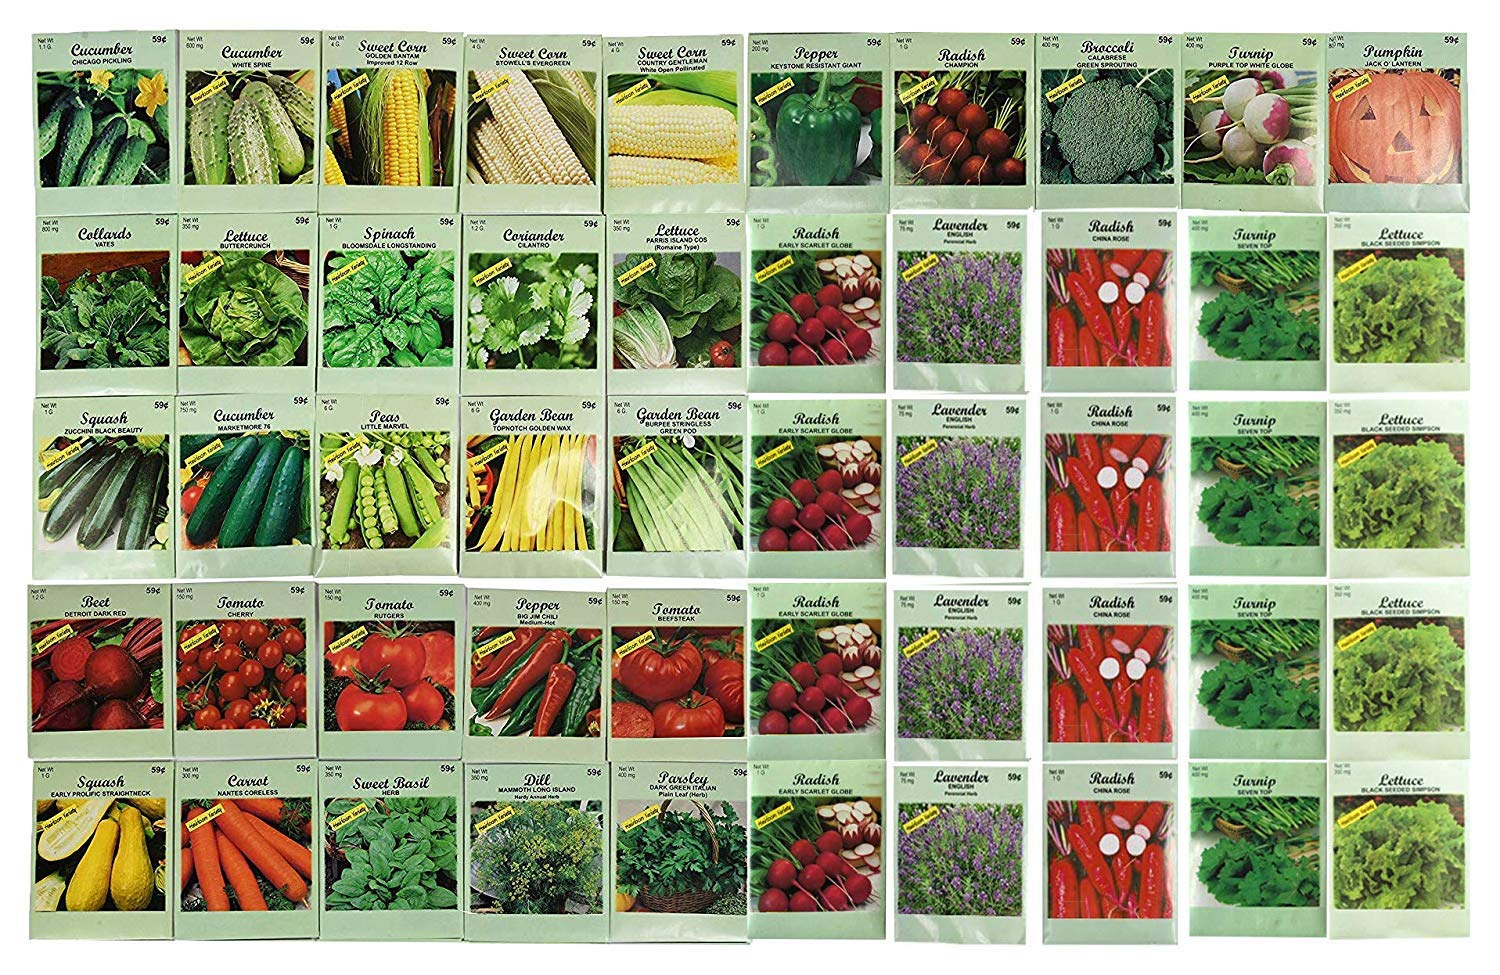 1000 Packs Assorted Heirloom Vegetable Seeds 30+ Varieties All Seeds are Heirloom, 100% Non-GMO Tens of Thousands Seeds (1000 Vegetable Seeds) by Black Duck Brand (Image #2)